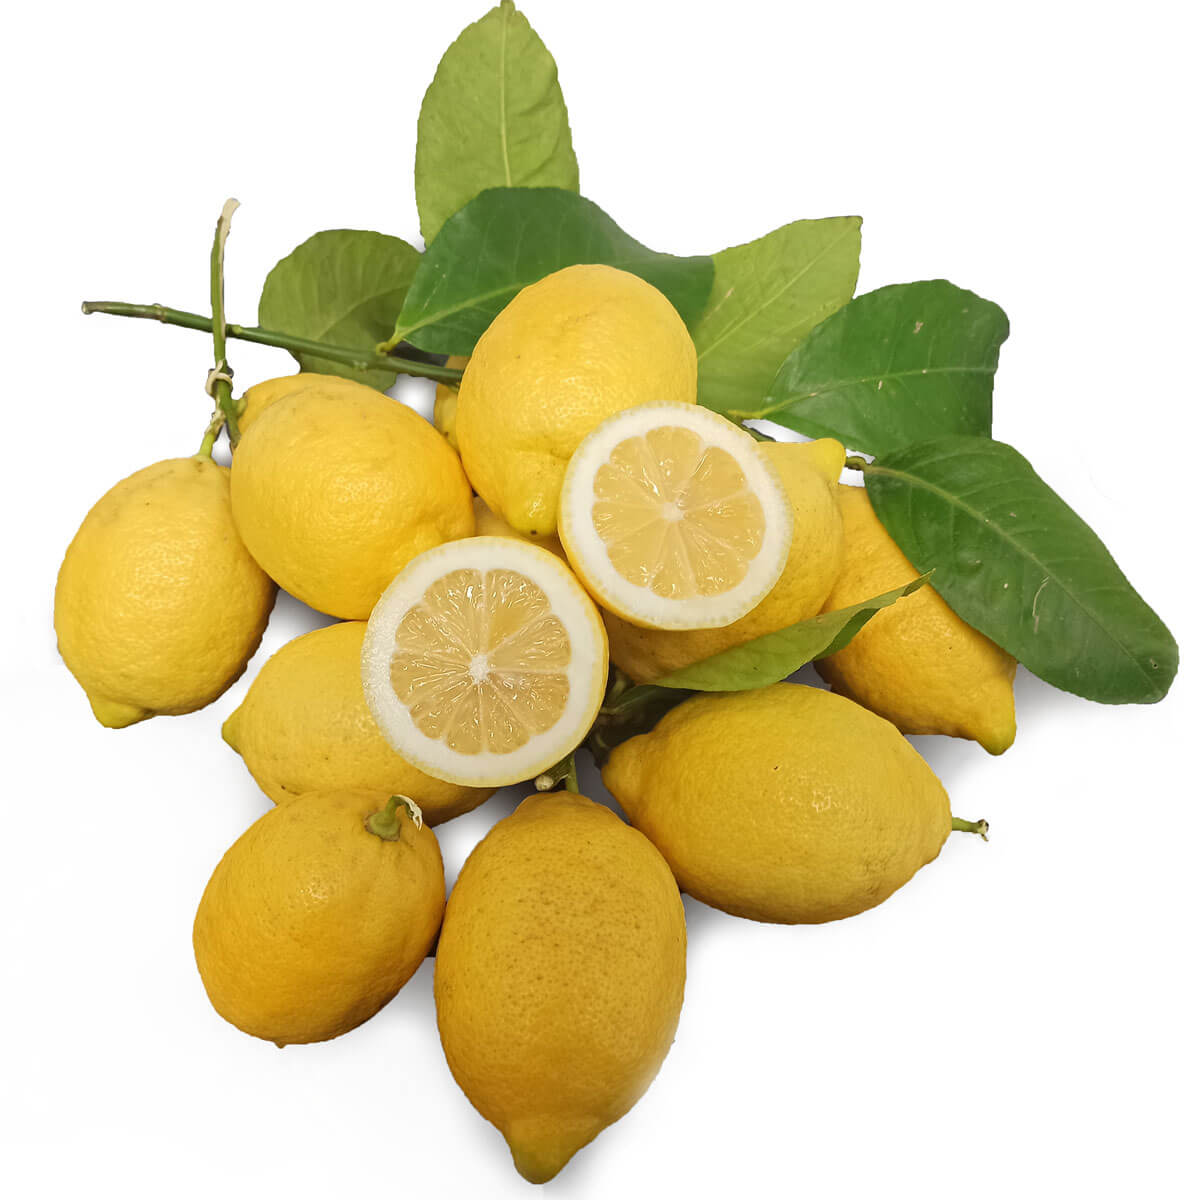 Limone femminello siracusano biologico